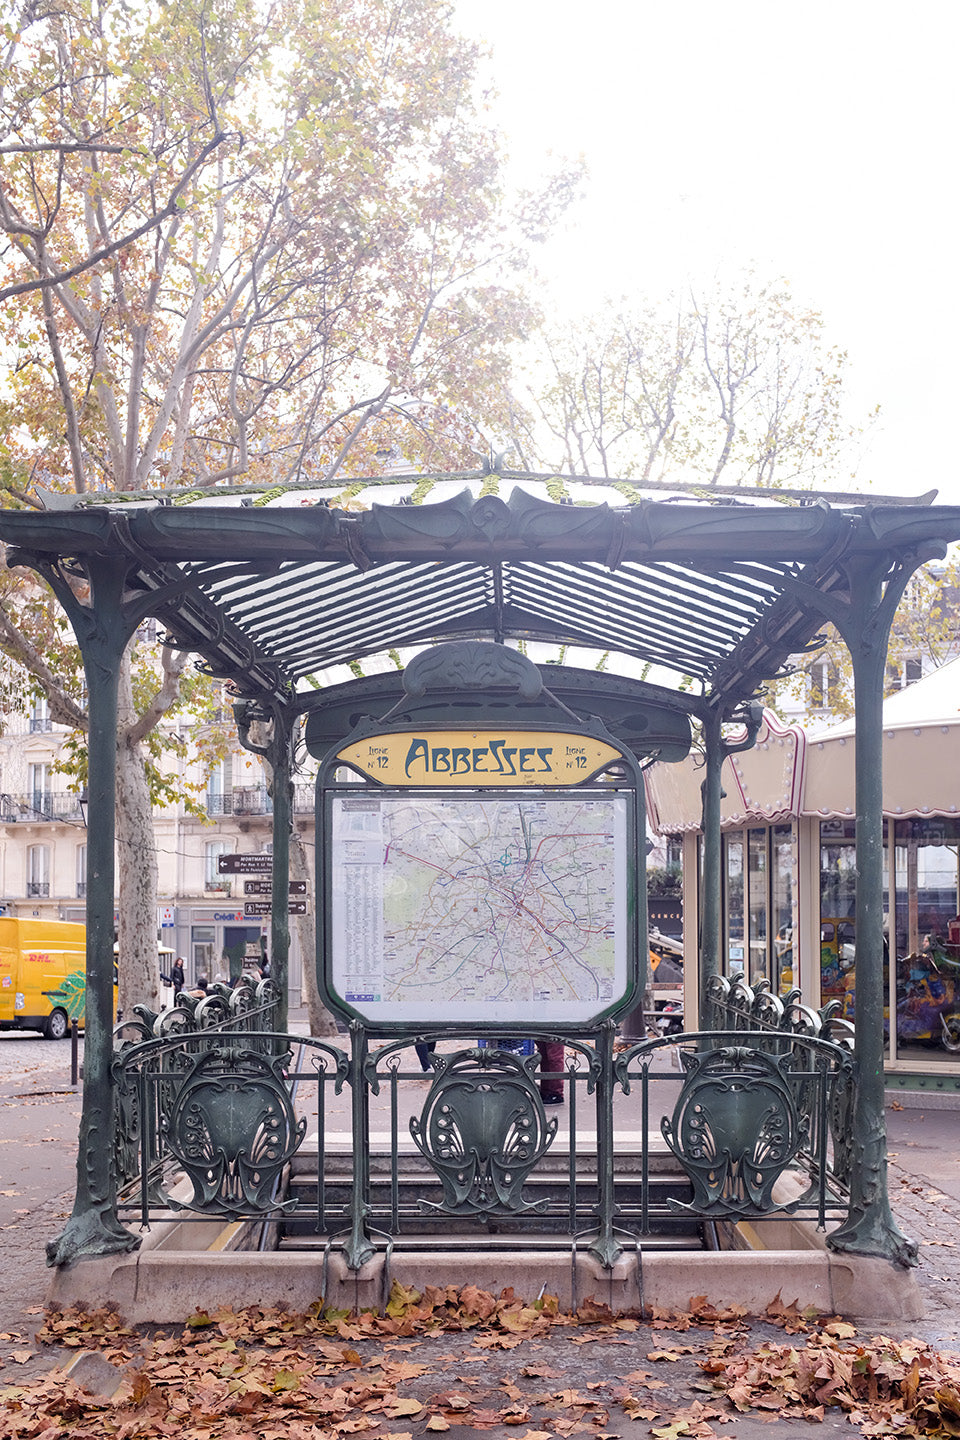 The Paris Metro Rue des Abbesses - Every Day Paris